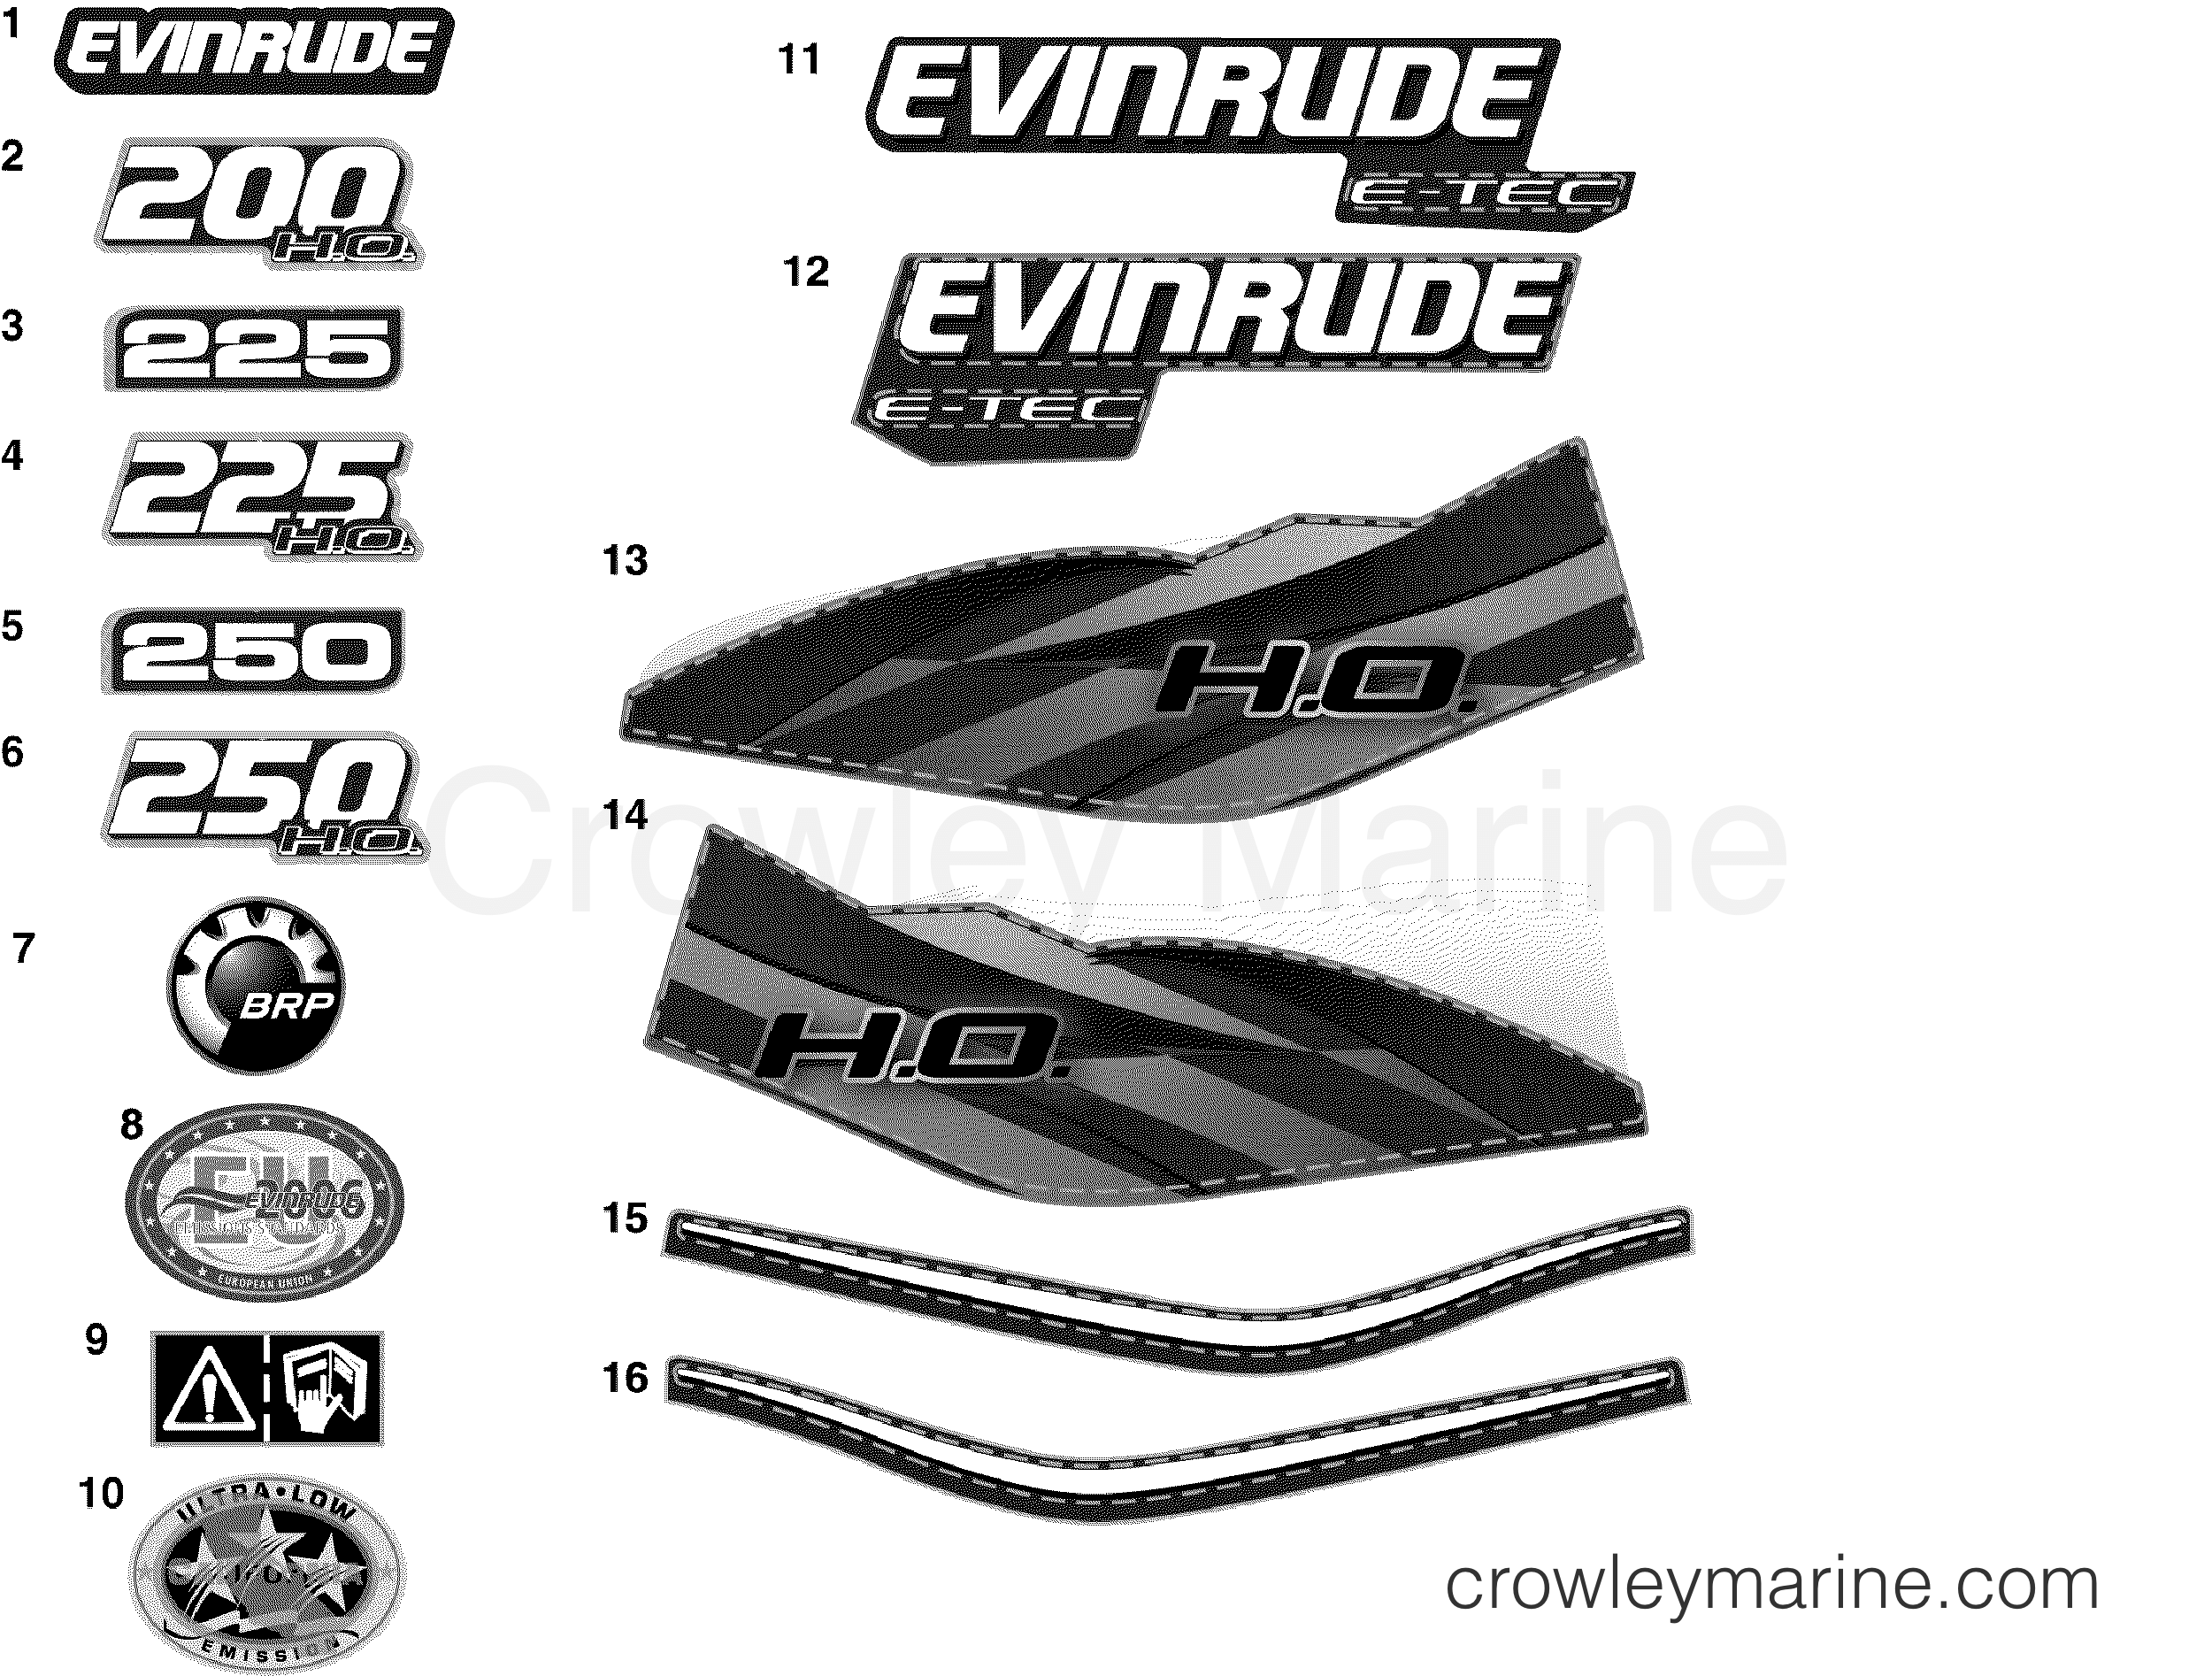 2010 Evinrude Outboards 200 - E200DHLISE DECALS section